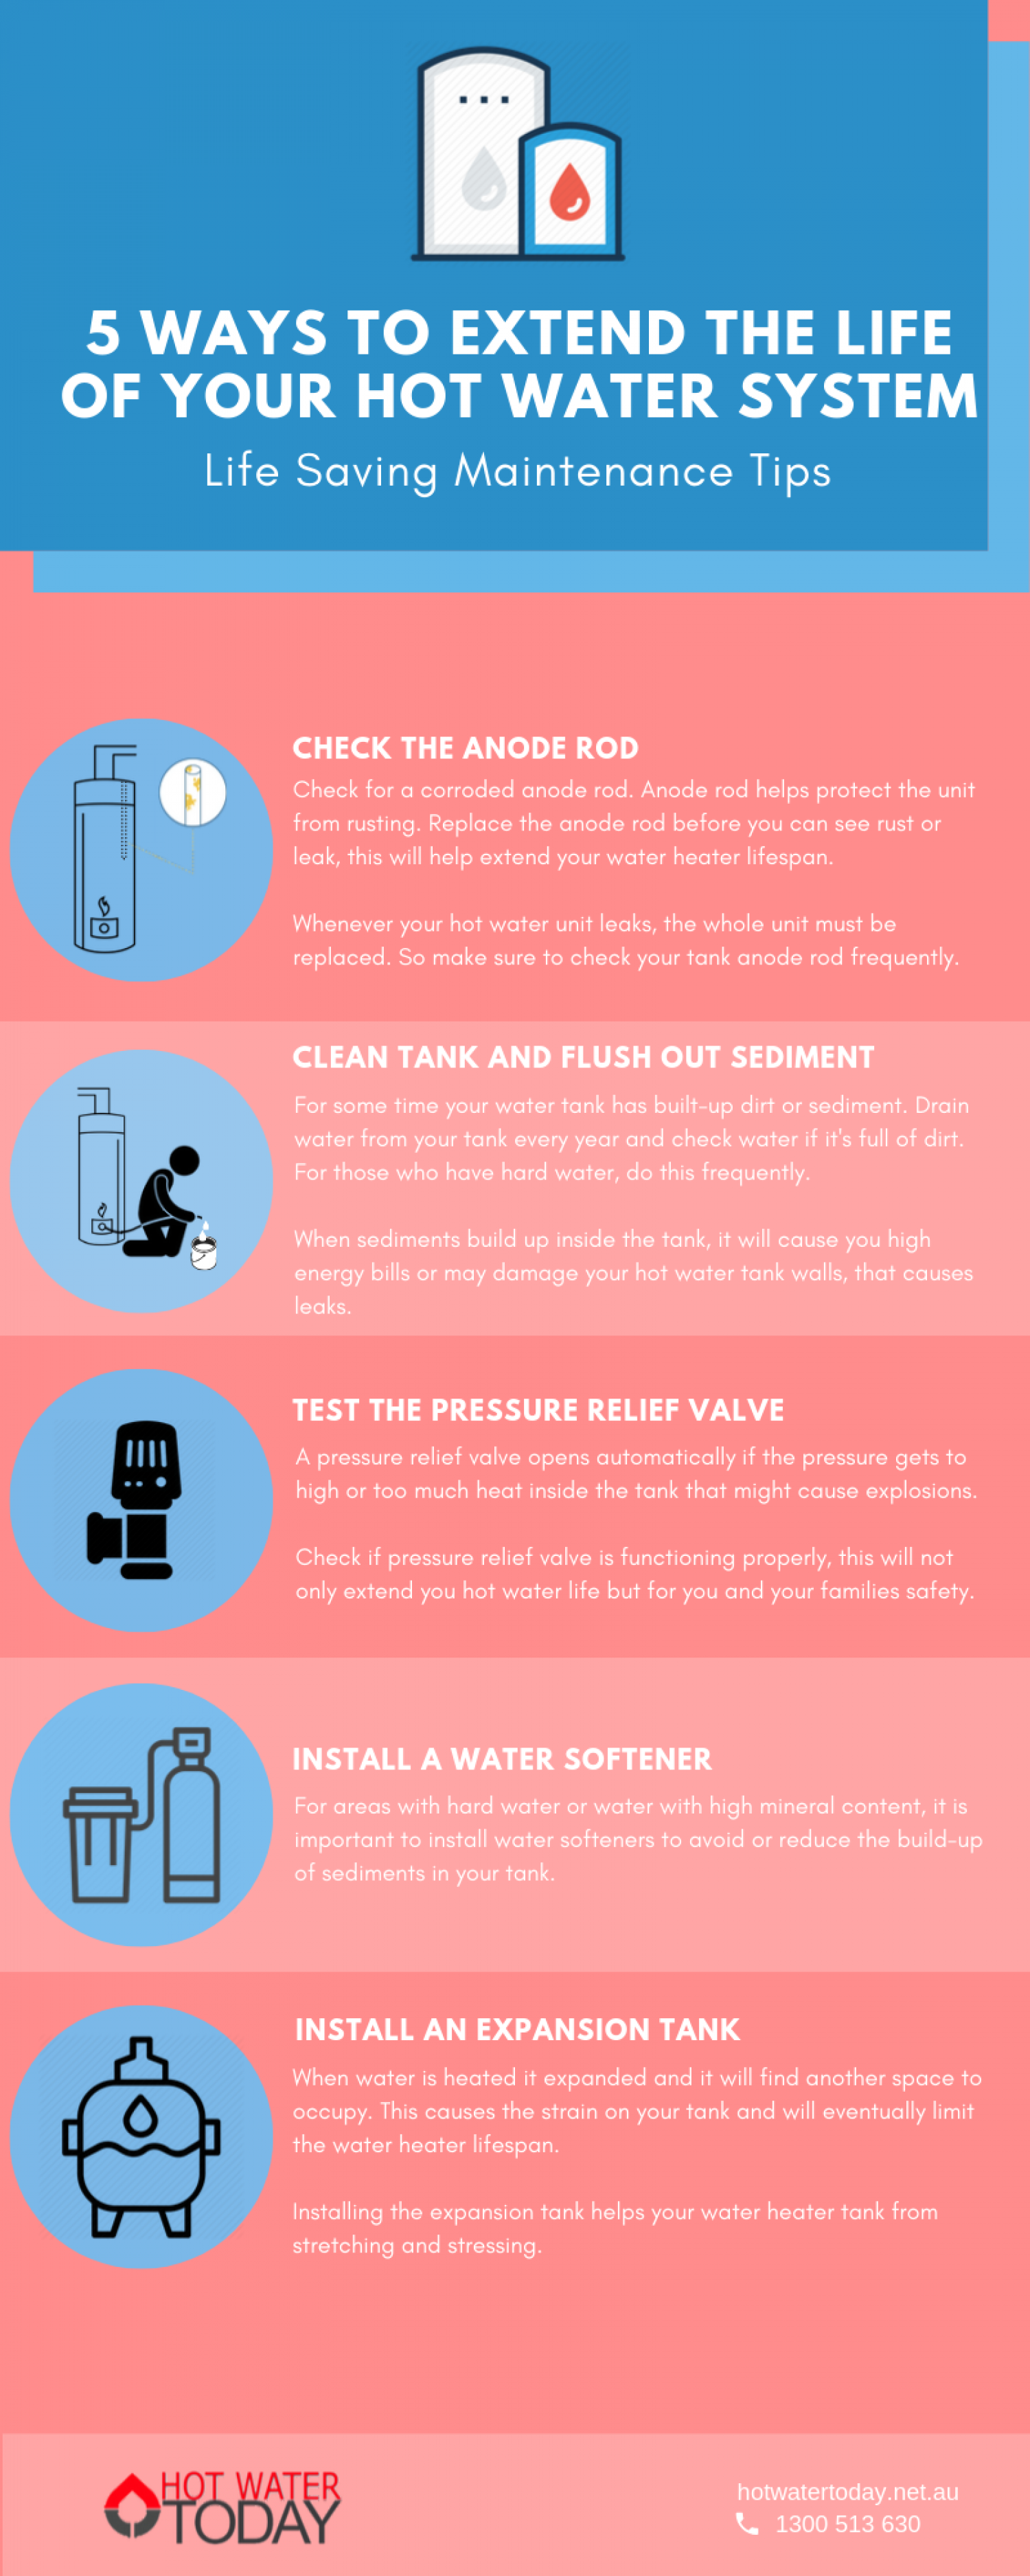 5 Ways to Extend the Life of your Hot Water System Infographic